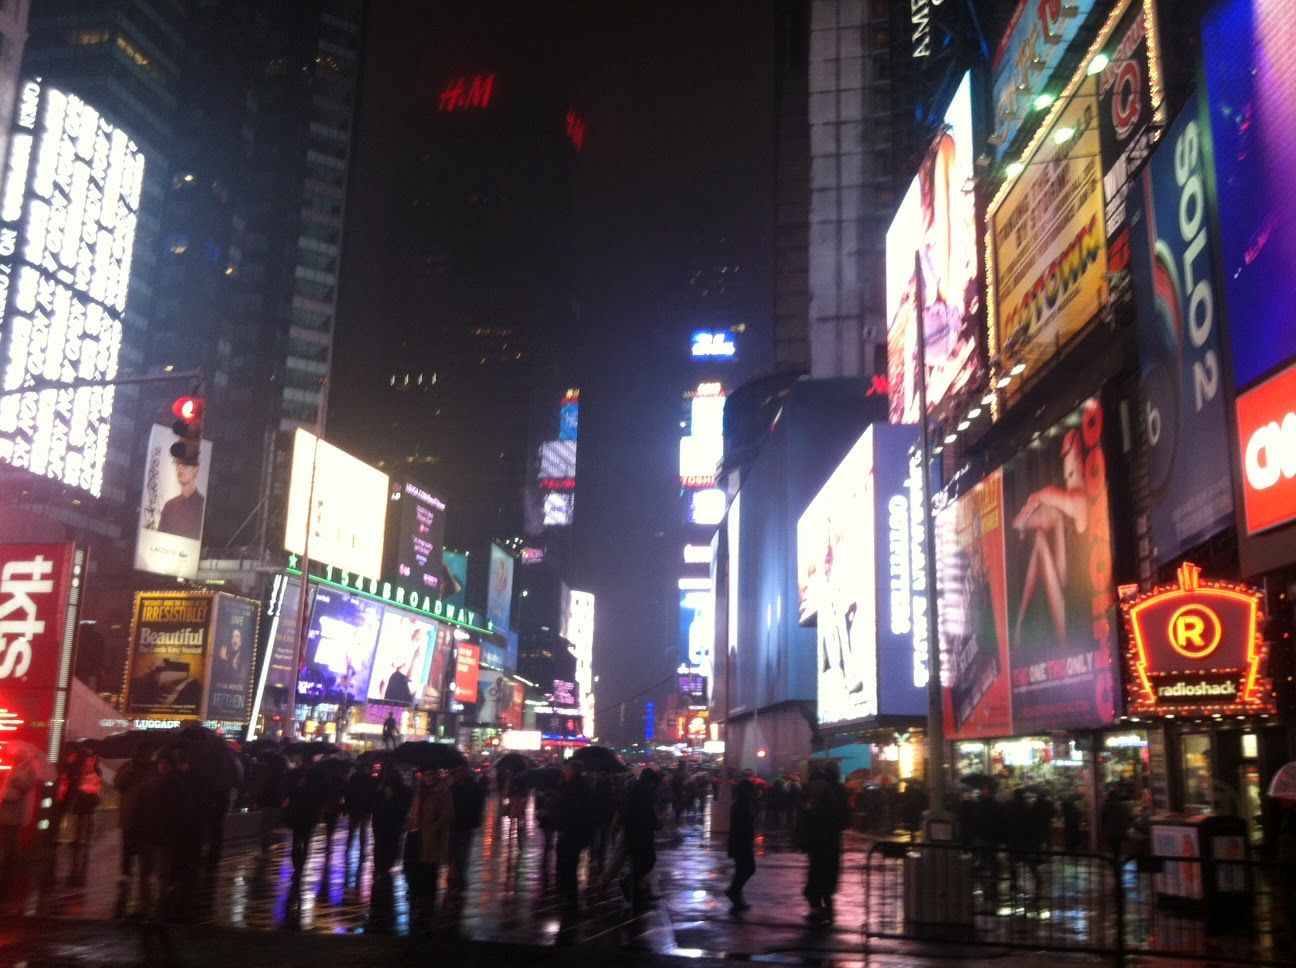 View of Times Square by Maja Trochimczyk